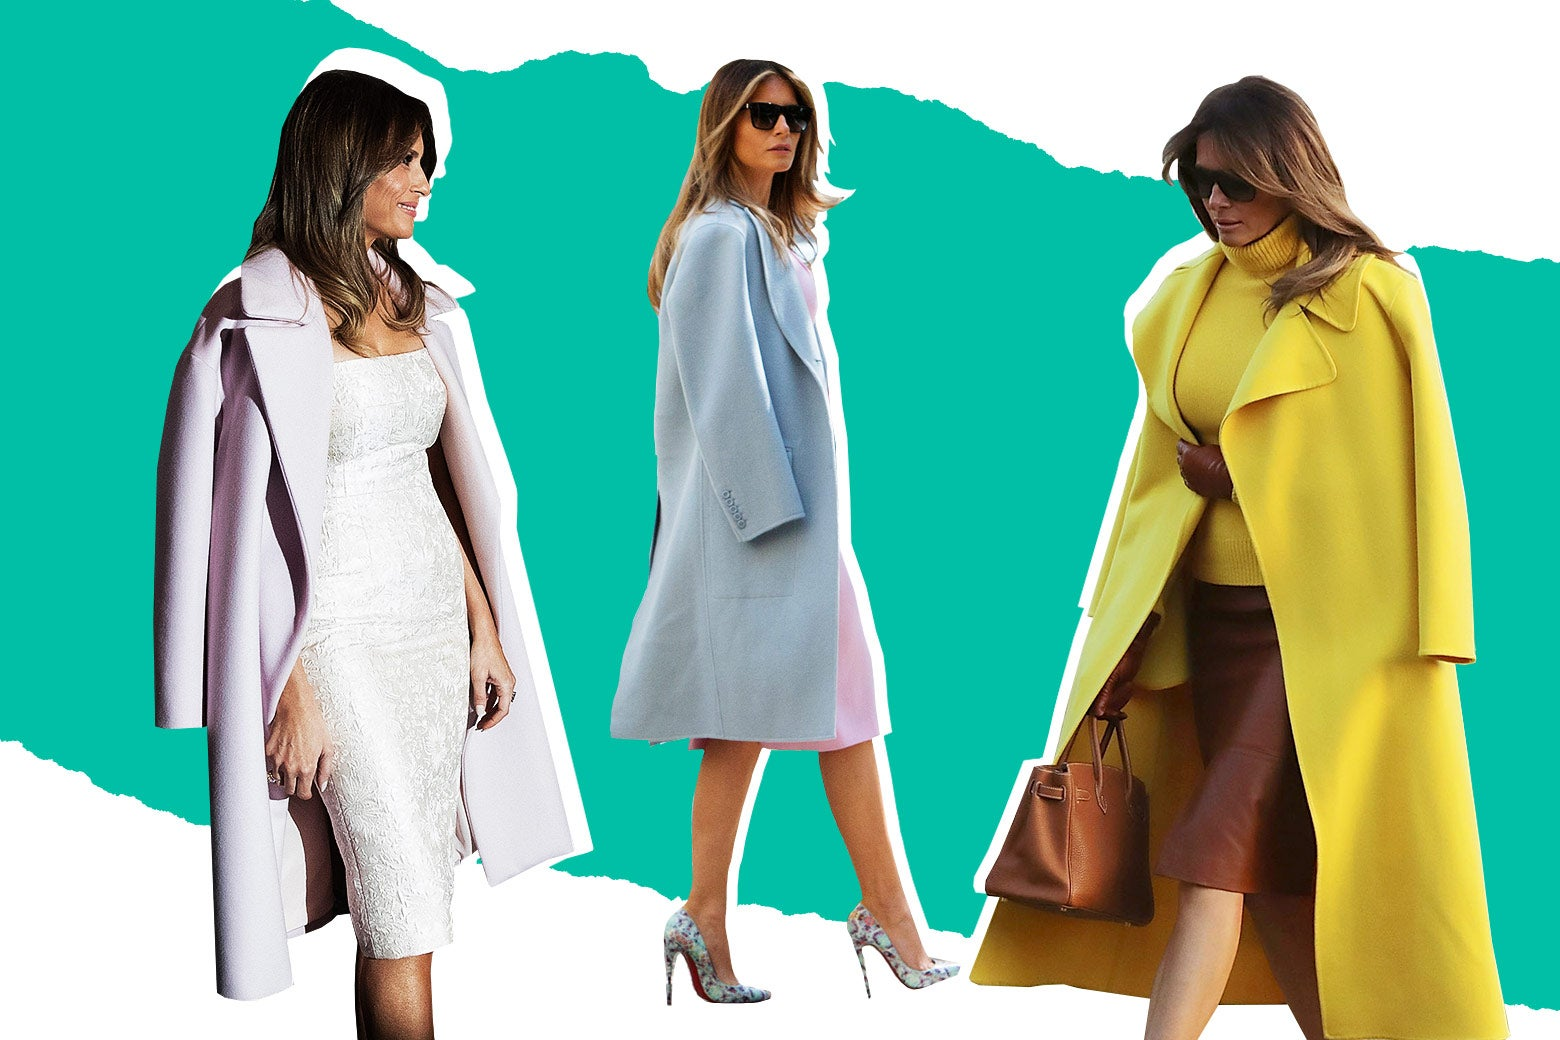 A collage of a chilly first lady, Melania Trump wearing a jacket over her shoulders.